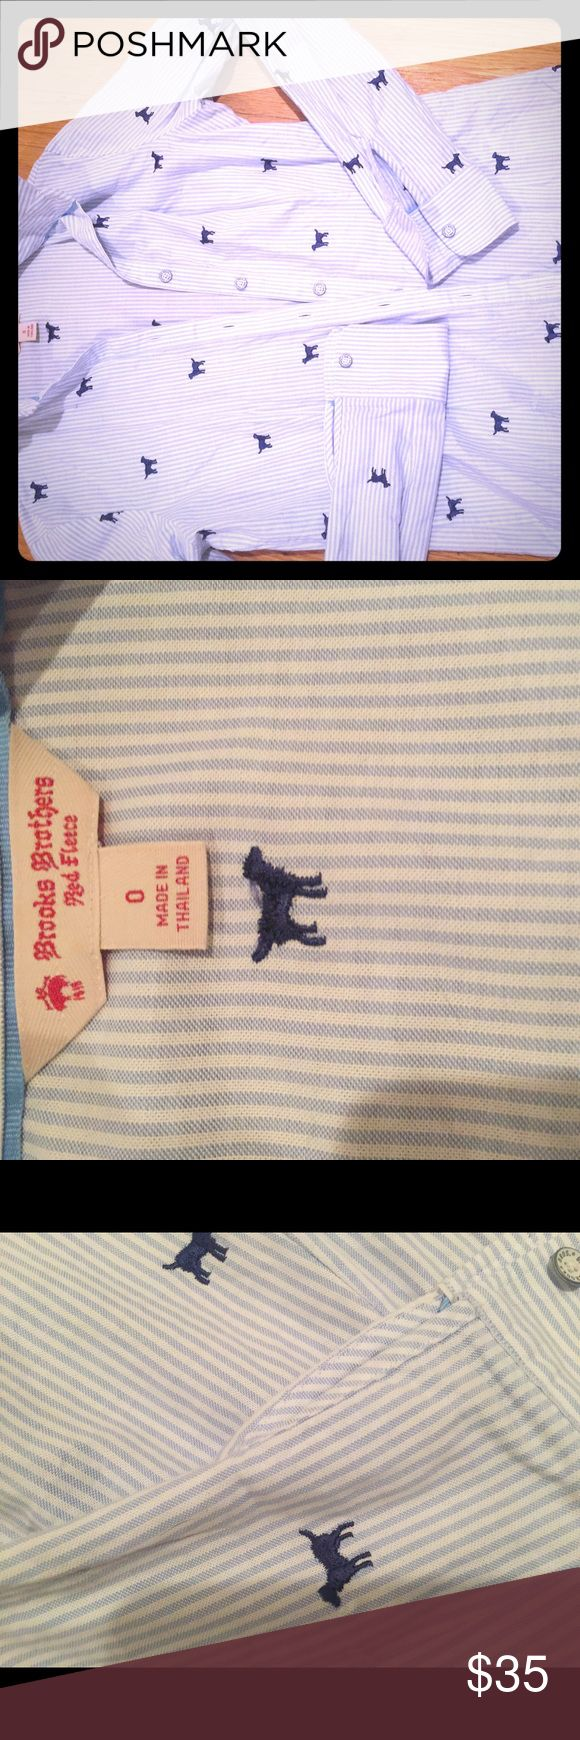 Brooks Brothers women's pinstripe Preppy Oxford Blue and white pinstripe button down. Very high quality! Little dogs etched in blue all throughout shirt. Looks great paired with a puffer vest or sweater for fall and winter seasons. This is from Brooks Red Fleece line geared towards young adults. This was purchased by me in a Brooks retail store. No longer fits me across the chest. Size is 0. Brooks Brothers Tops Button Down Shirts